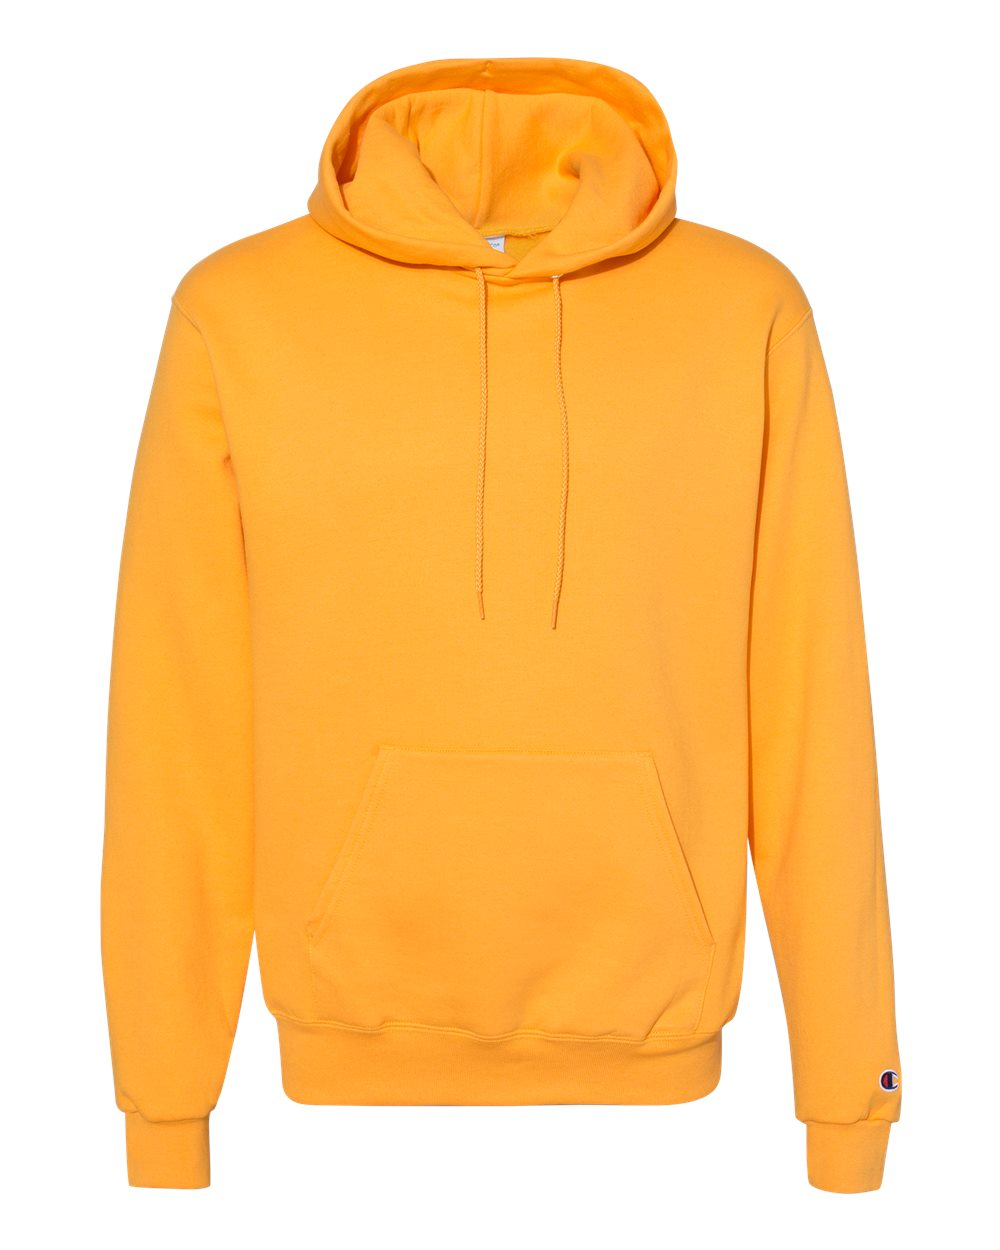 Champion-Mens-Double-Dry-Eco-Hooded-Sweatshirt-Hoodie-Pullover-S700-up-to-3XL miniature 15